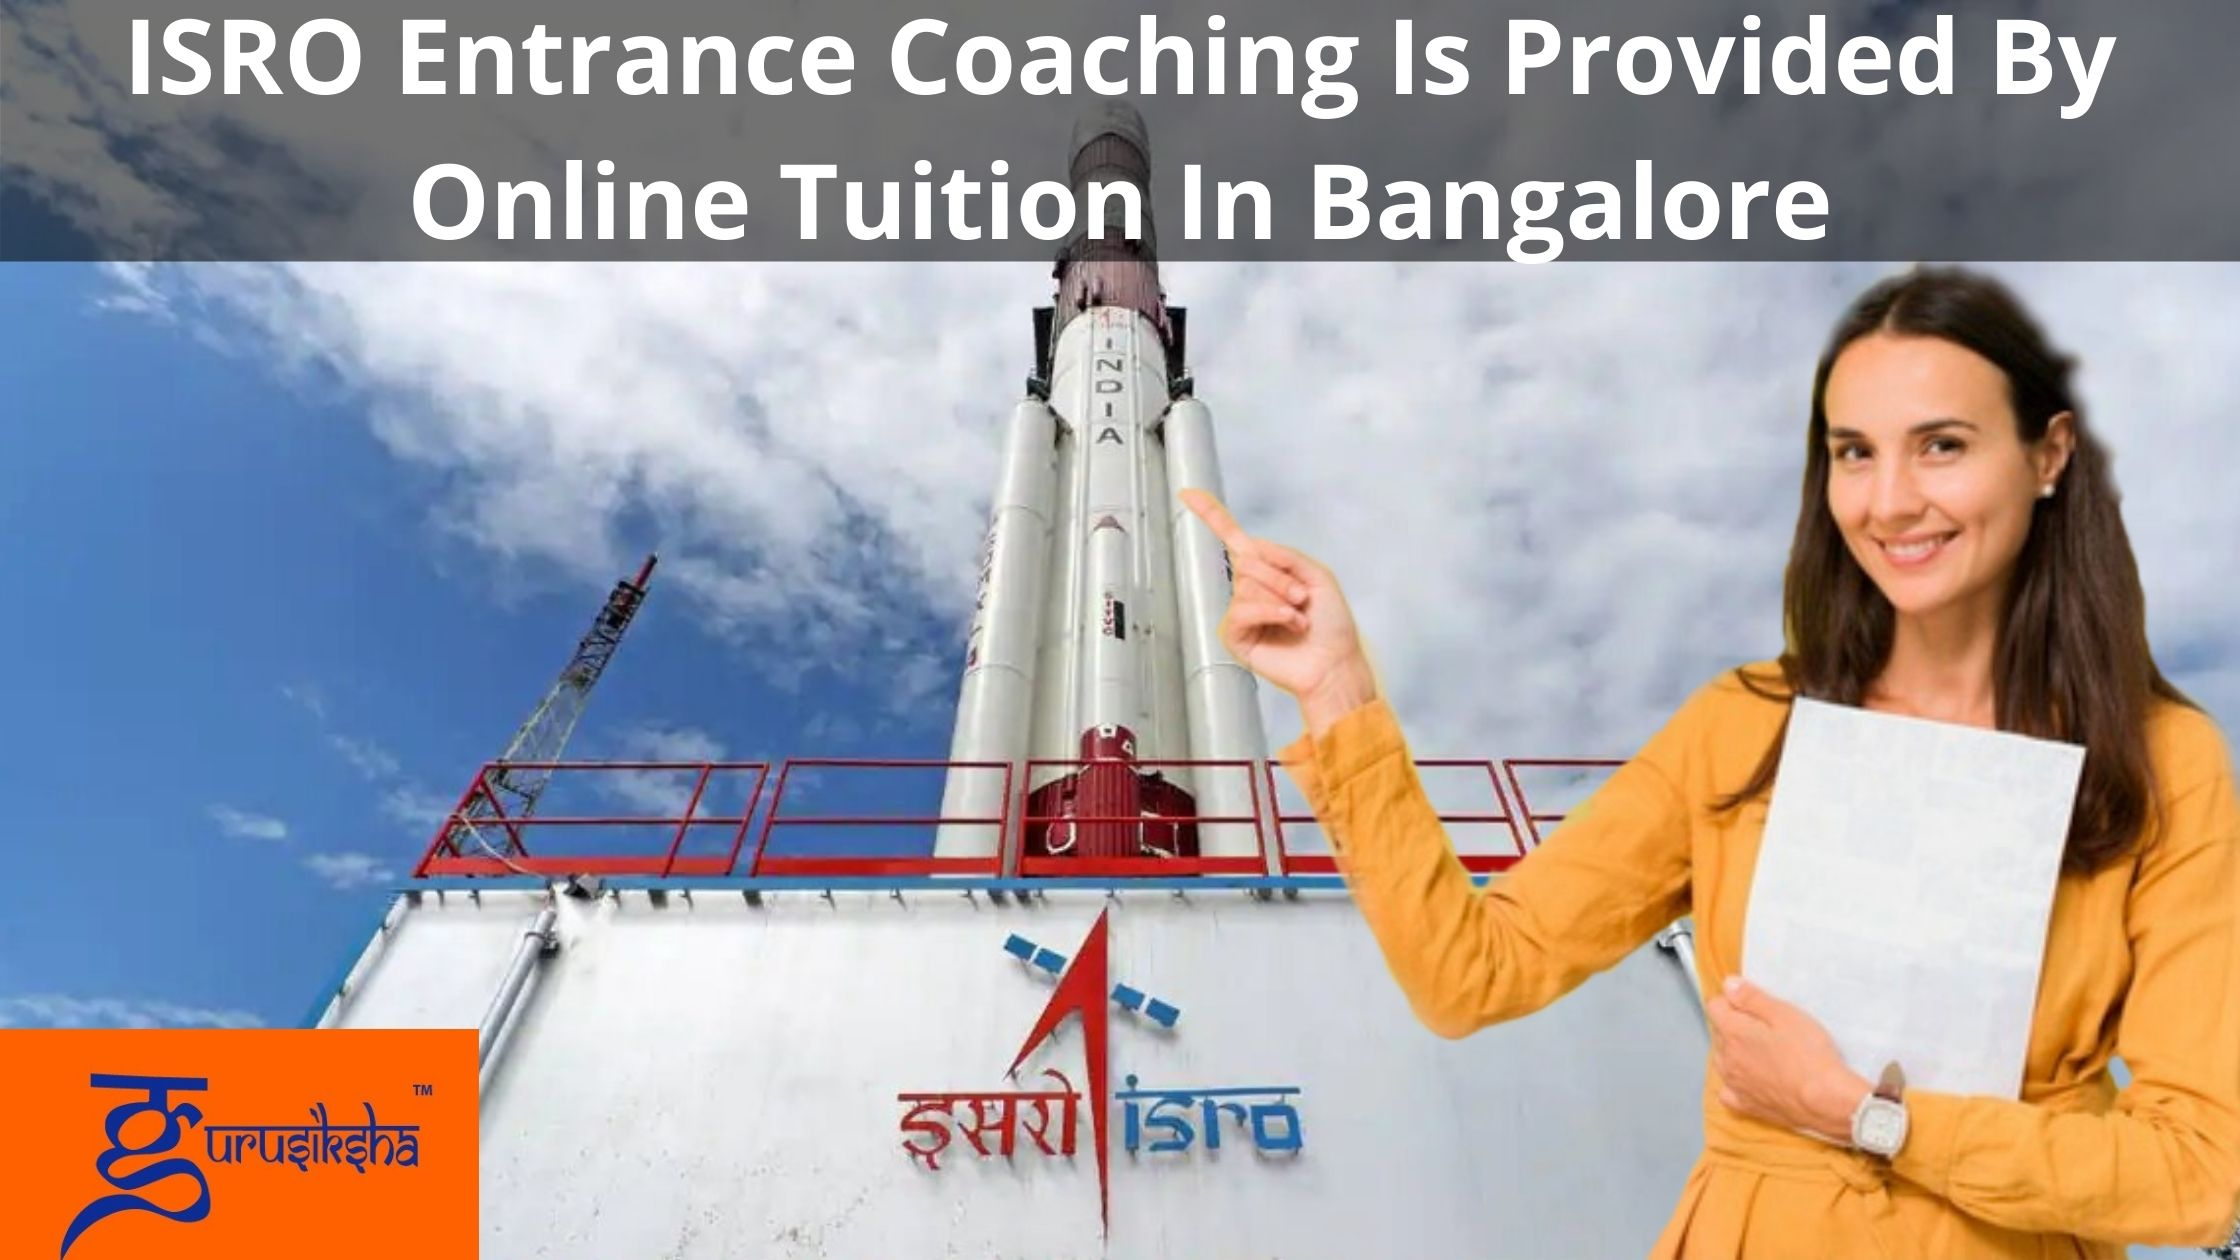 ISRO Entrance Coaching Is Provided By Online Tuition In Bangalore